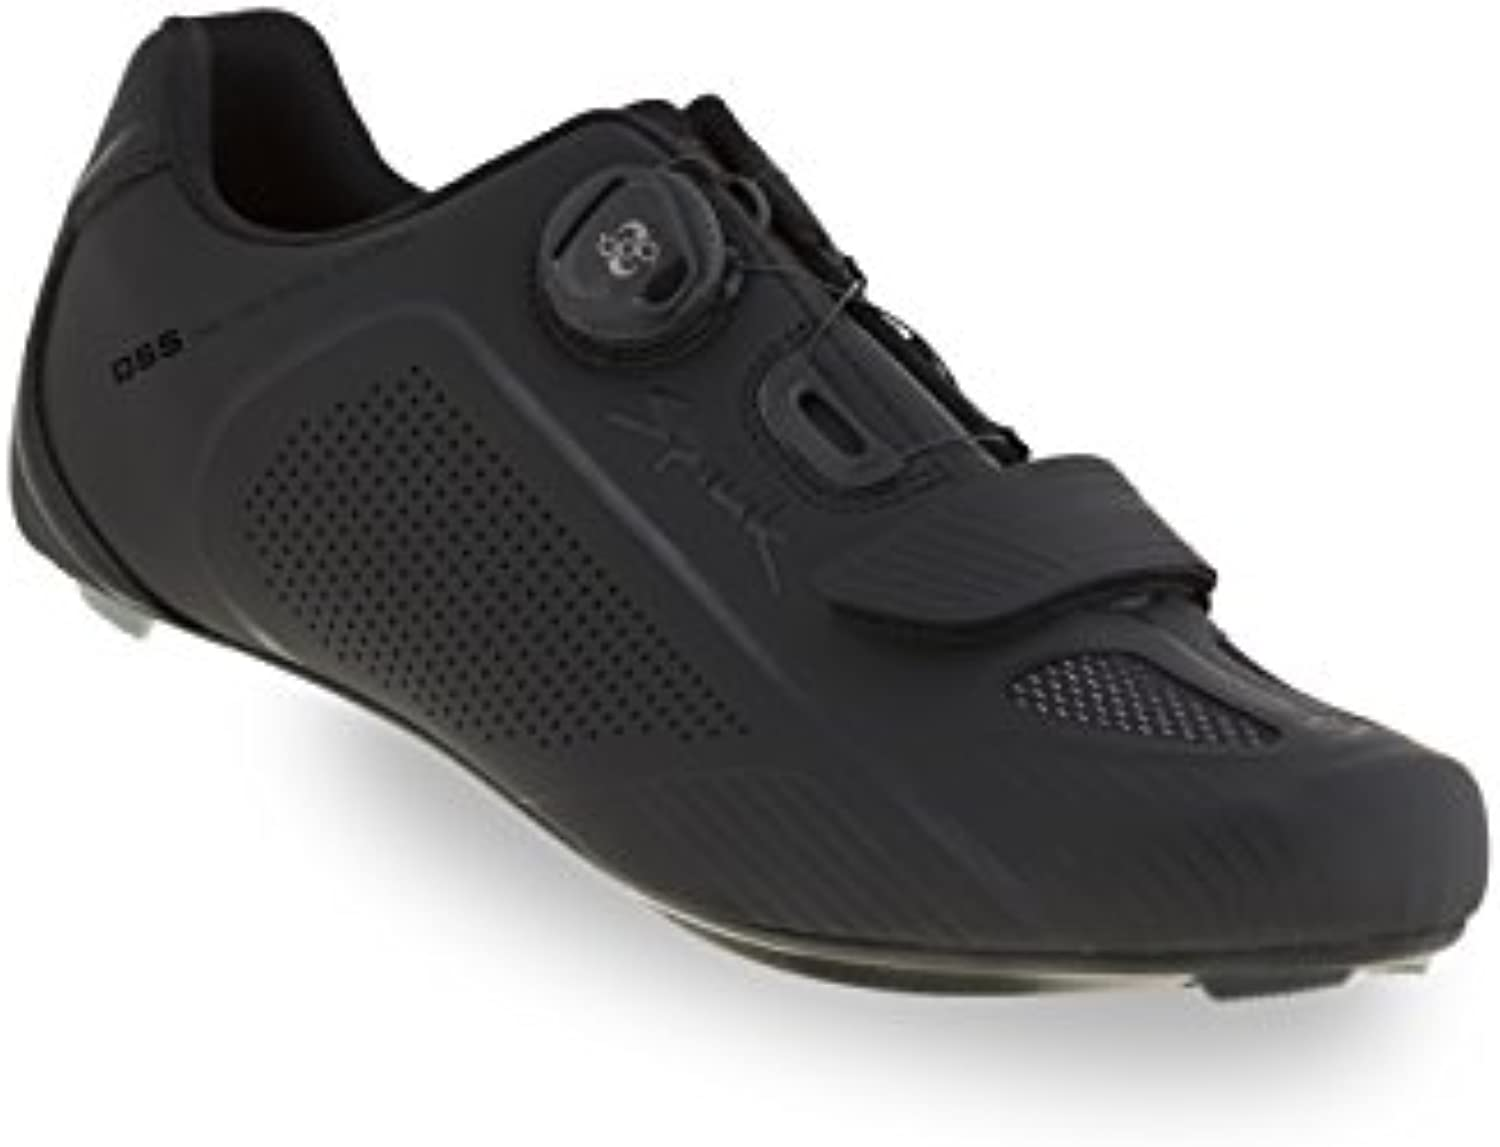 Chaussures Route SPIUK ALTUBE RC RC RC Noir Mat Taille 44 9cfd37